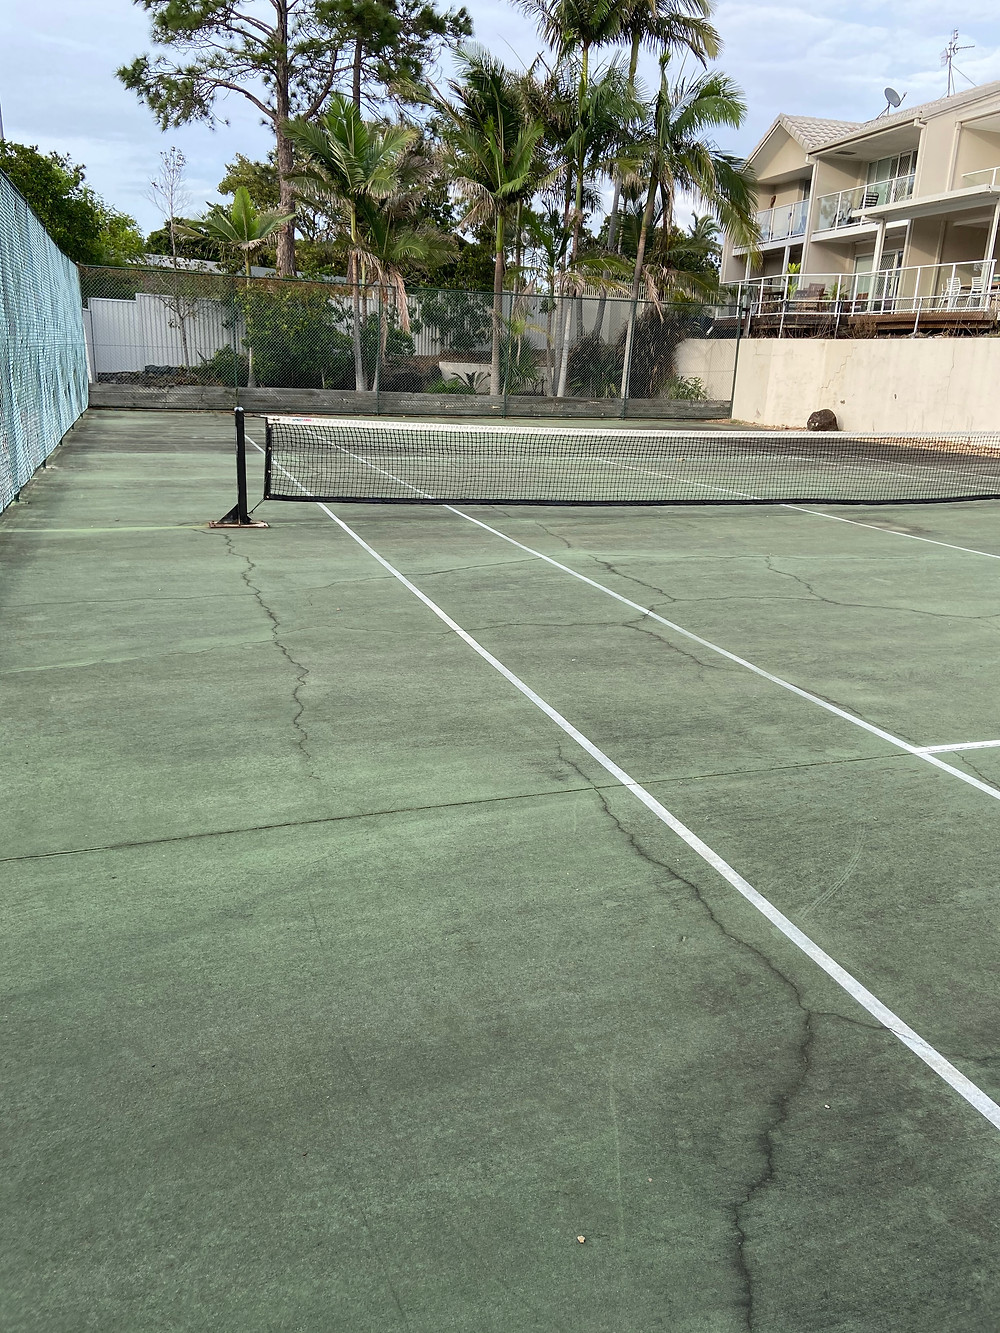 This is a picture we took at sailfish cove in mermaid waters on the gold coast old. This is the photo of there tennis court before we cleaned in using our high pressure cleaner.